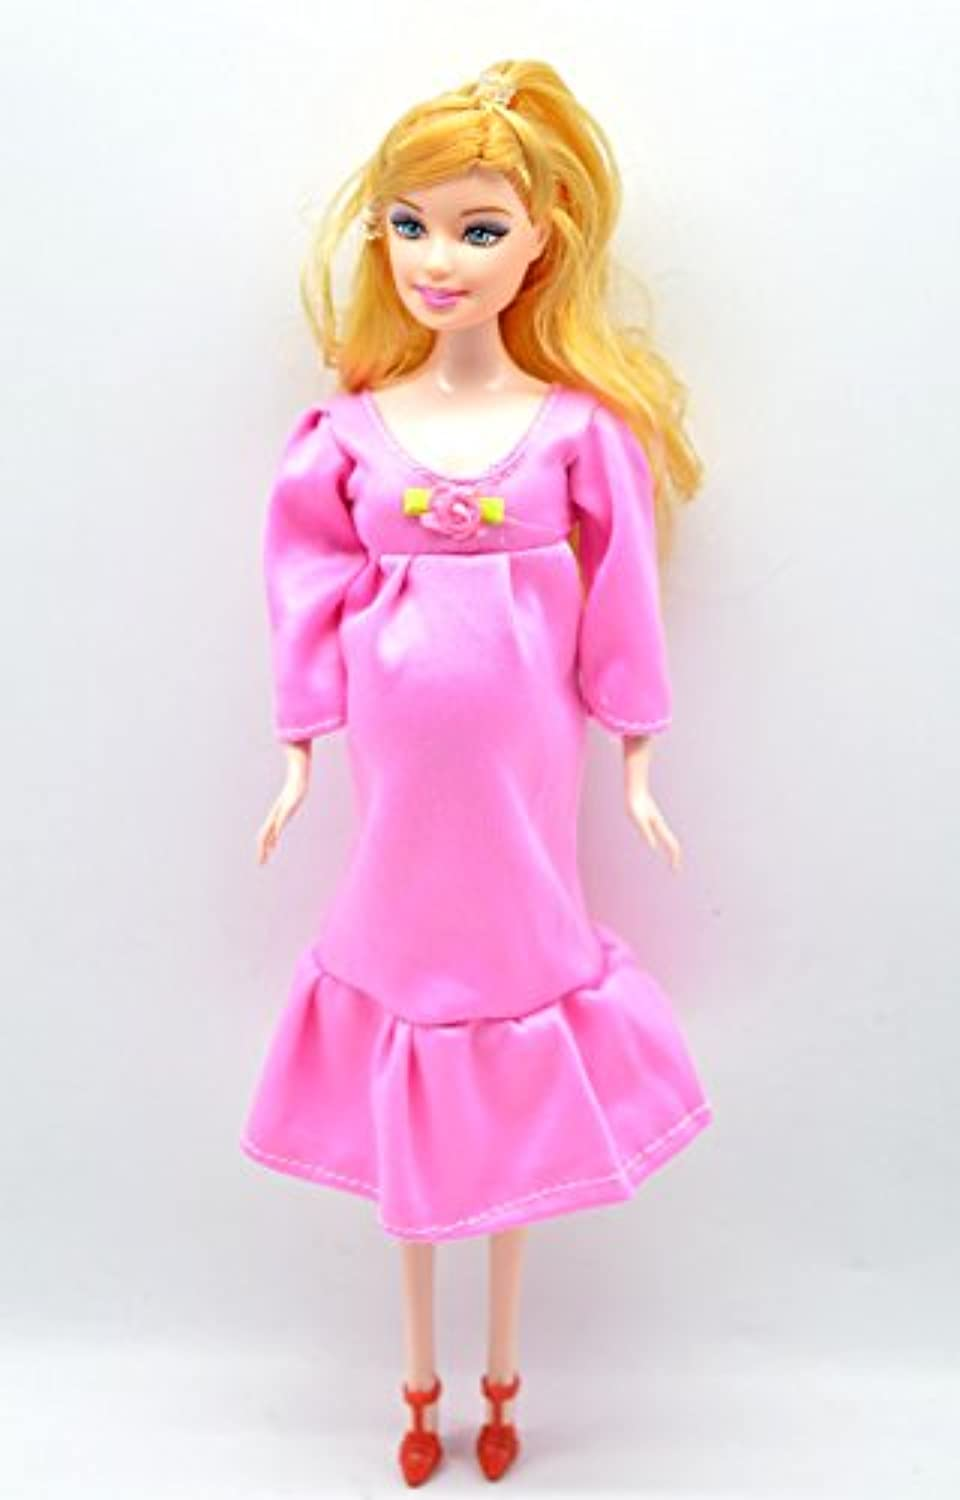 Pregnant For Barbie Doll,Have a Baby In Her Tummy,Pregnant Tummy and Baby